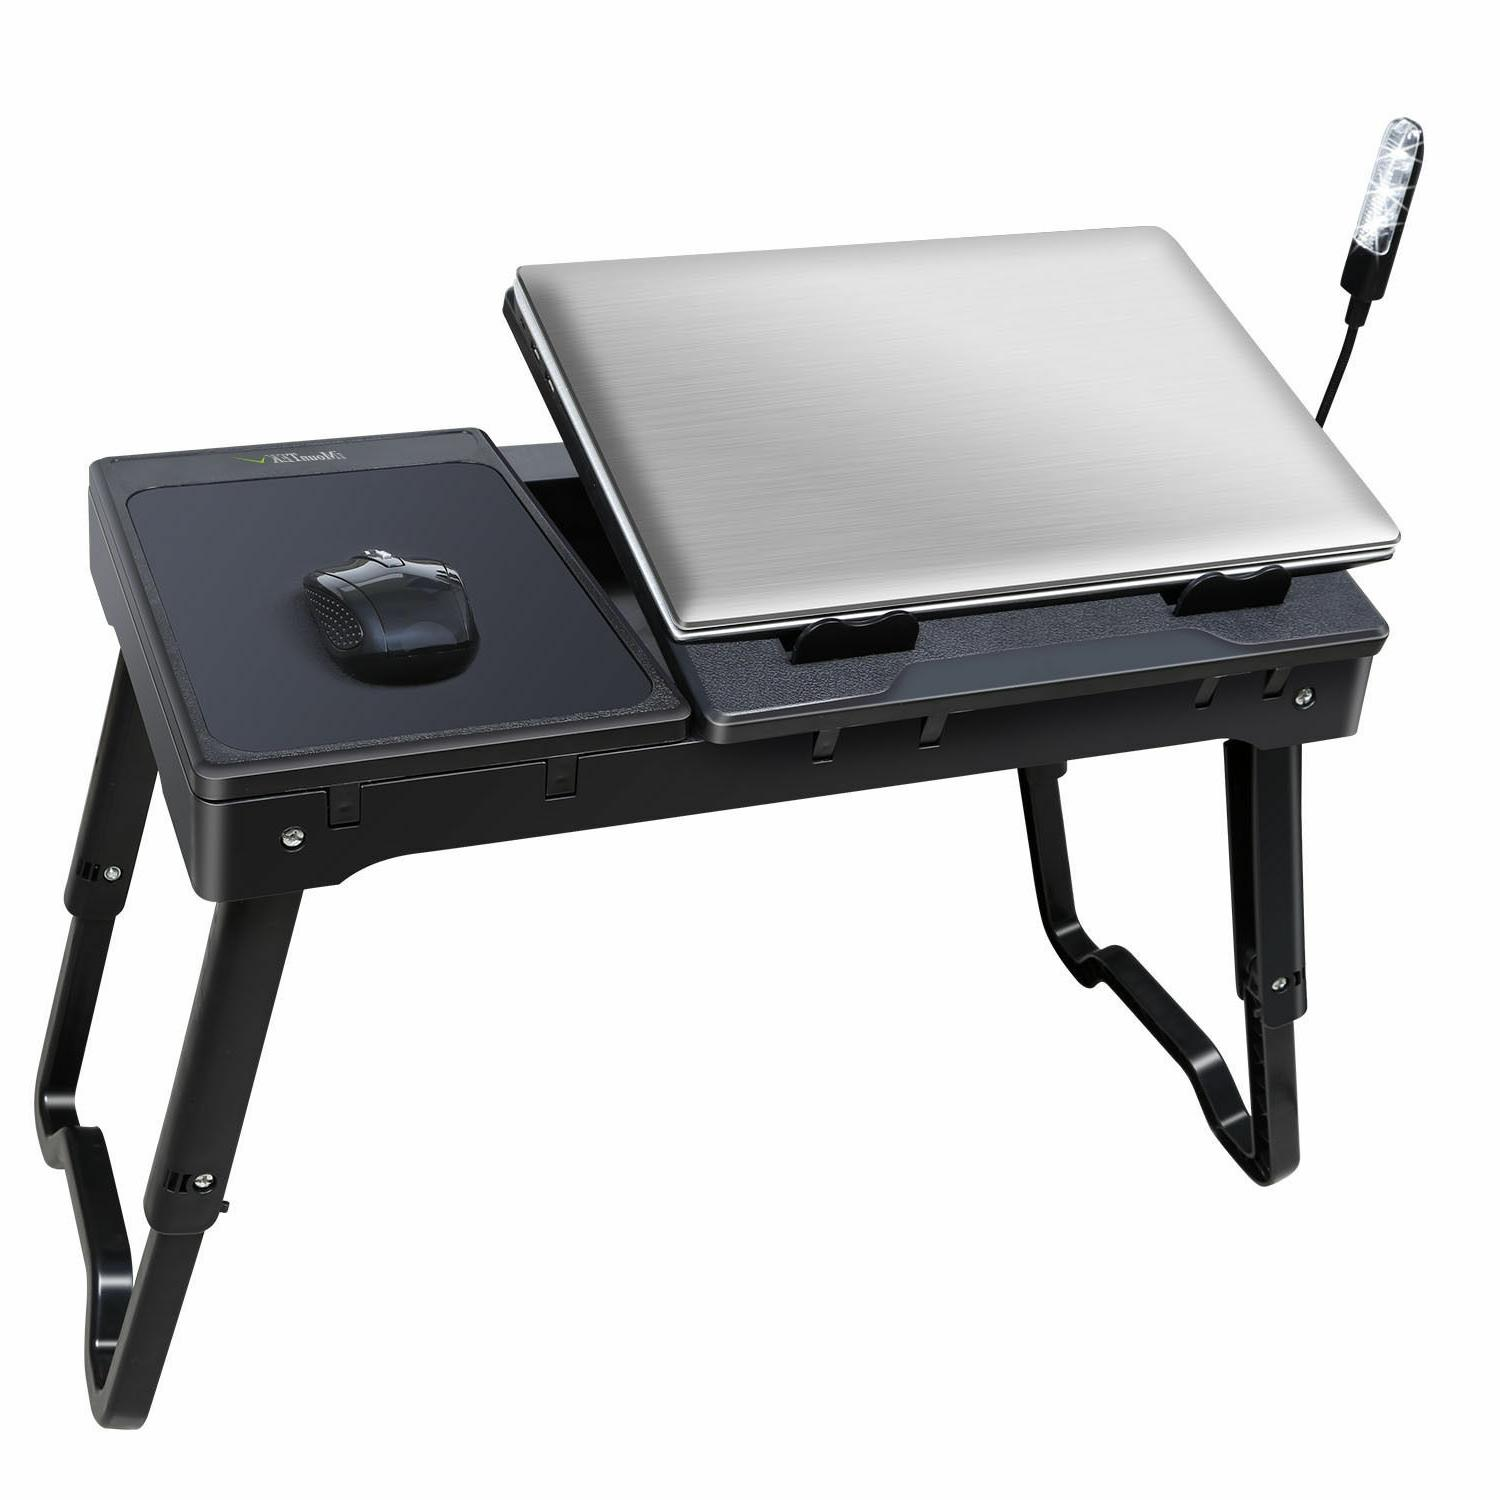 iMounTEK Portable Laptop Lap With Cooling Pad LED Lamp With USB